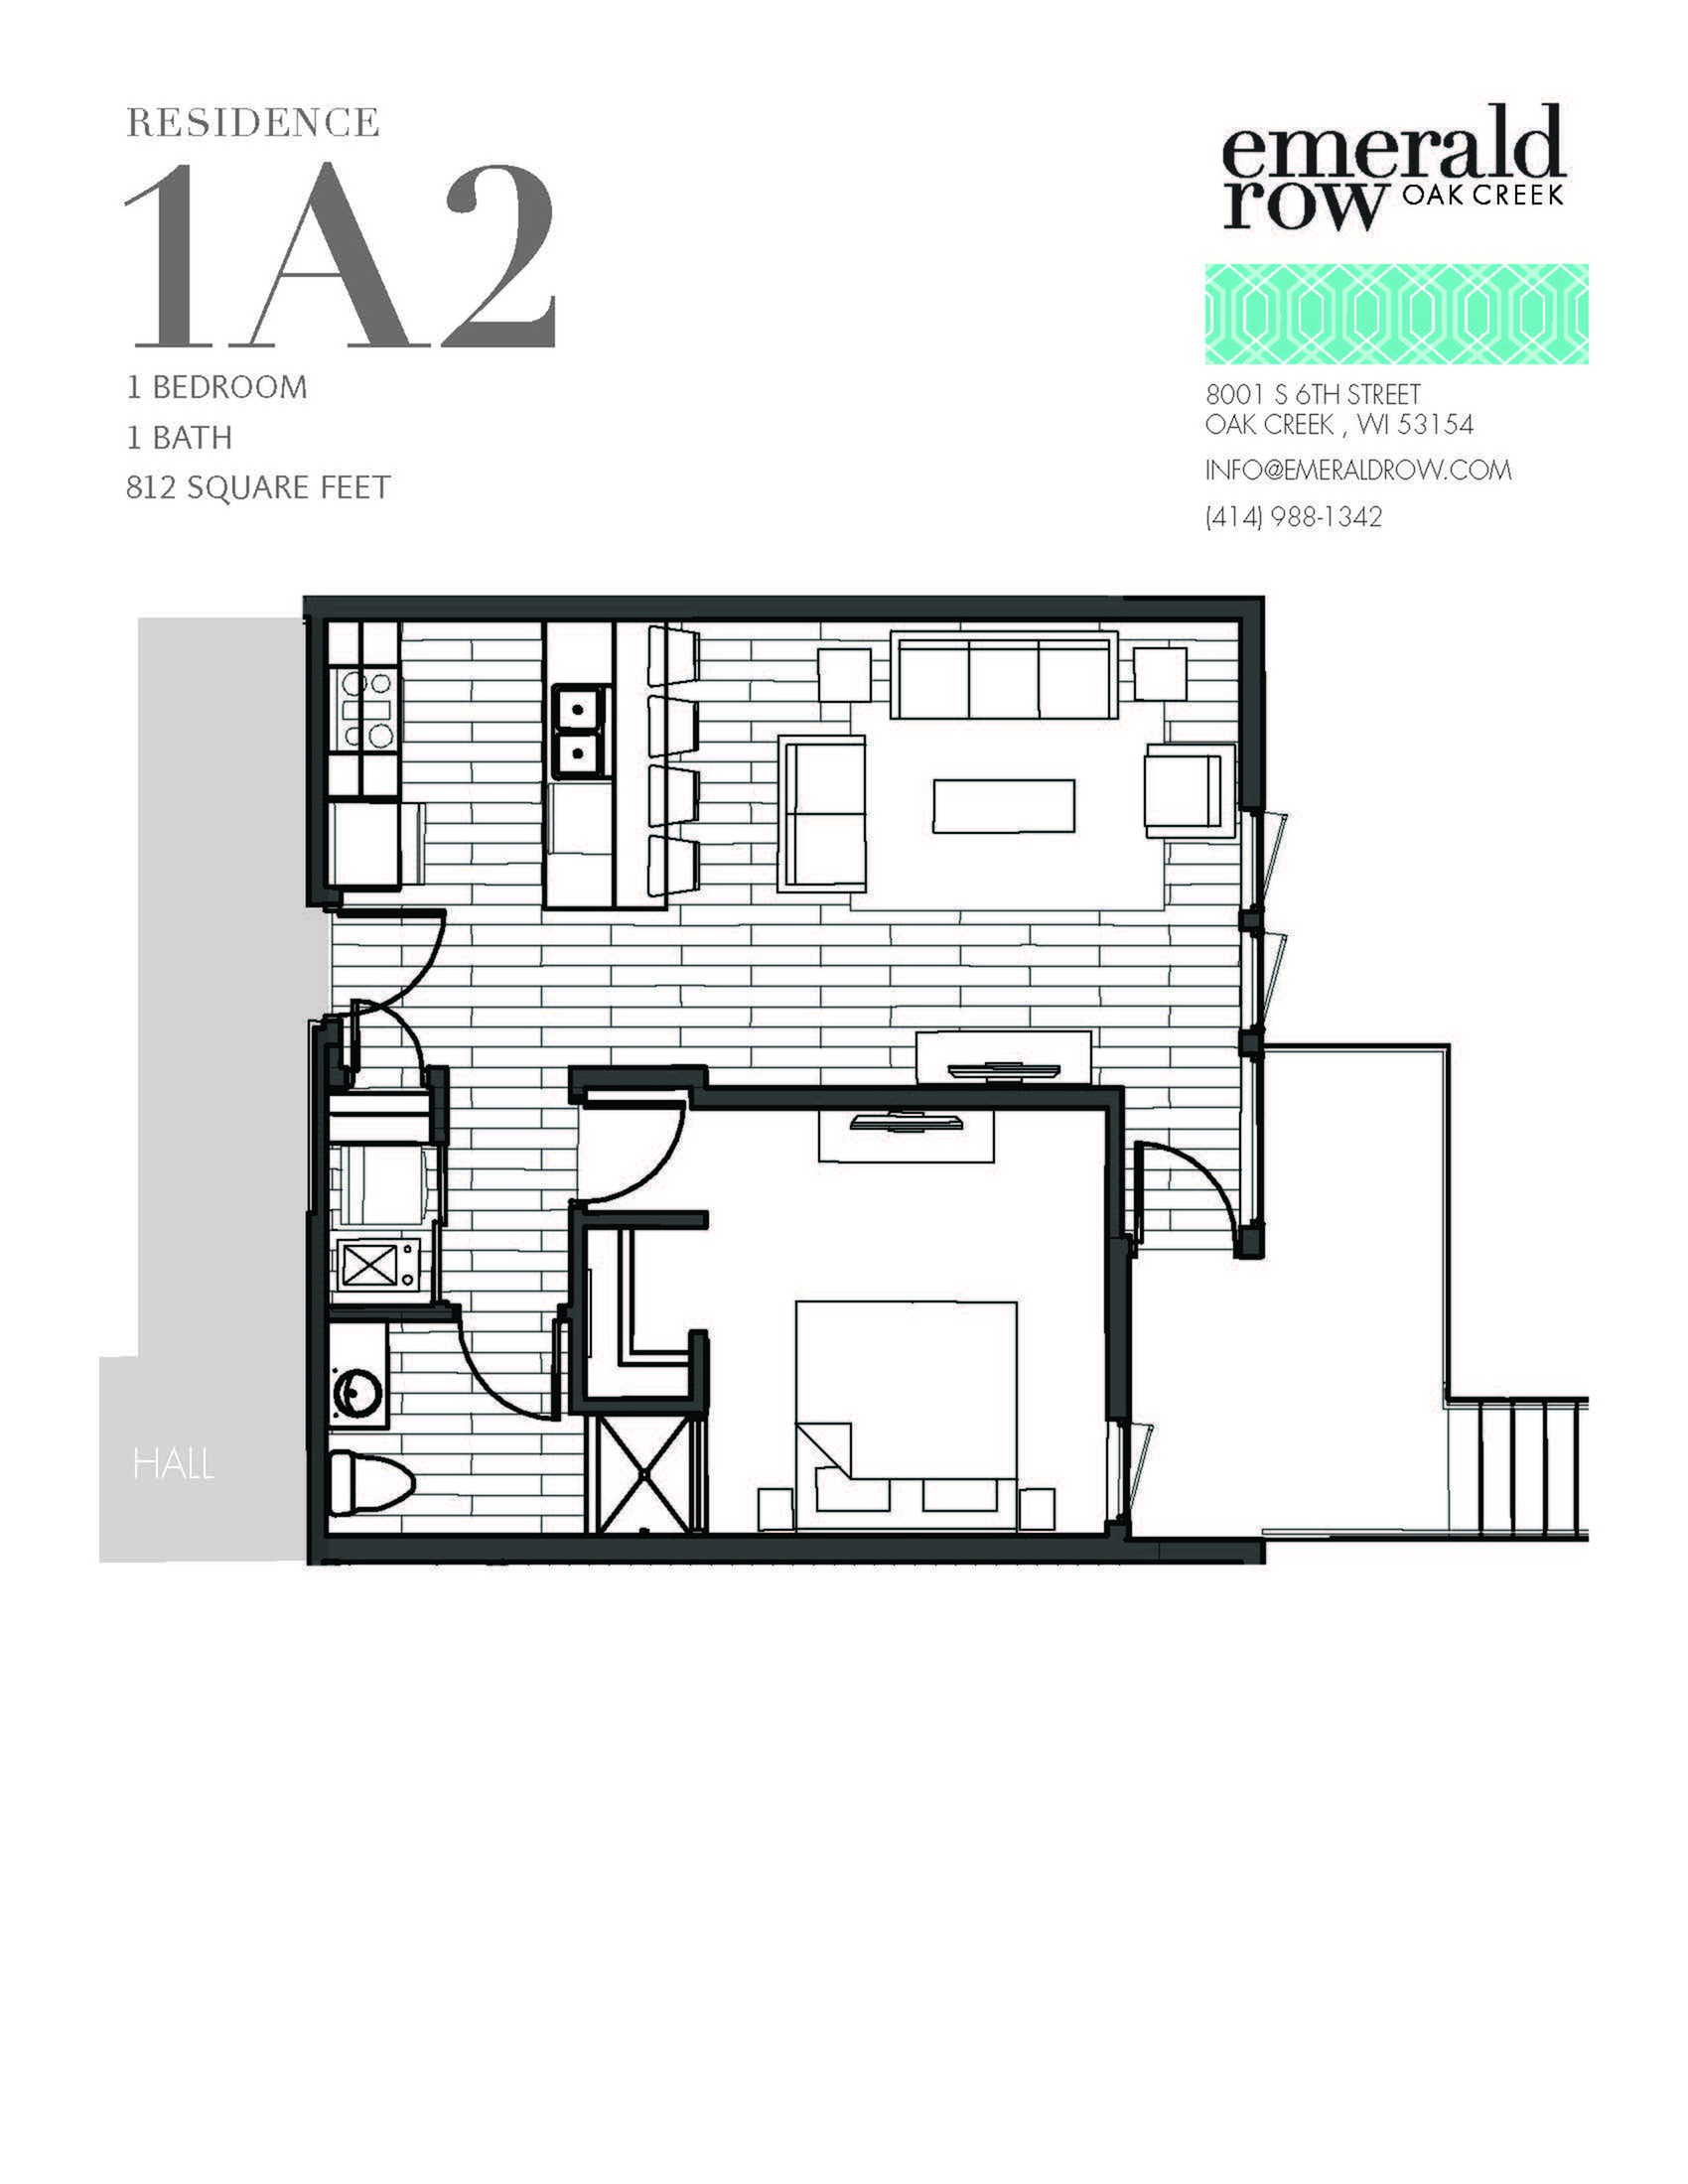 1 Bed 1 Bath Floor Plan 1A2